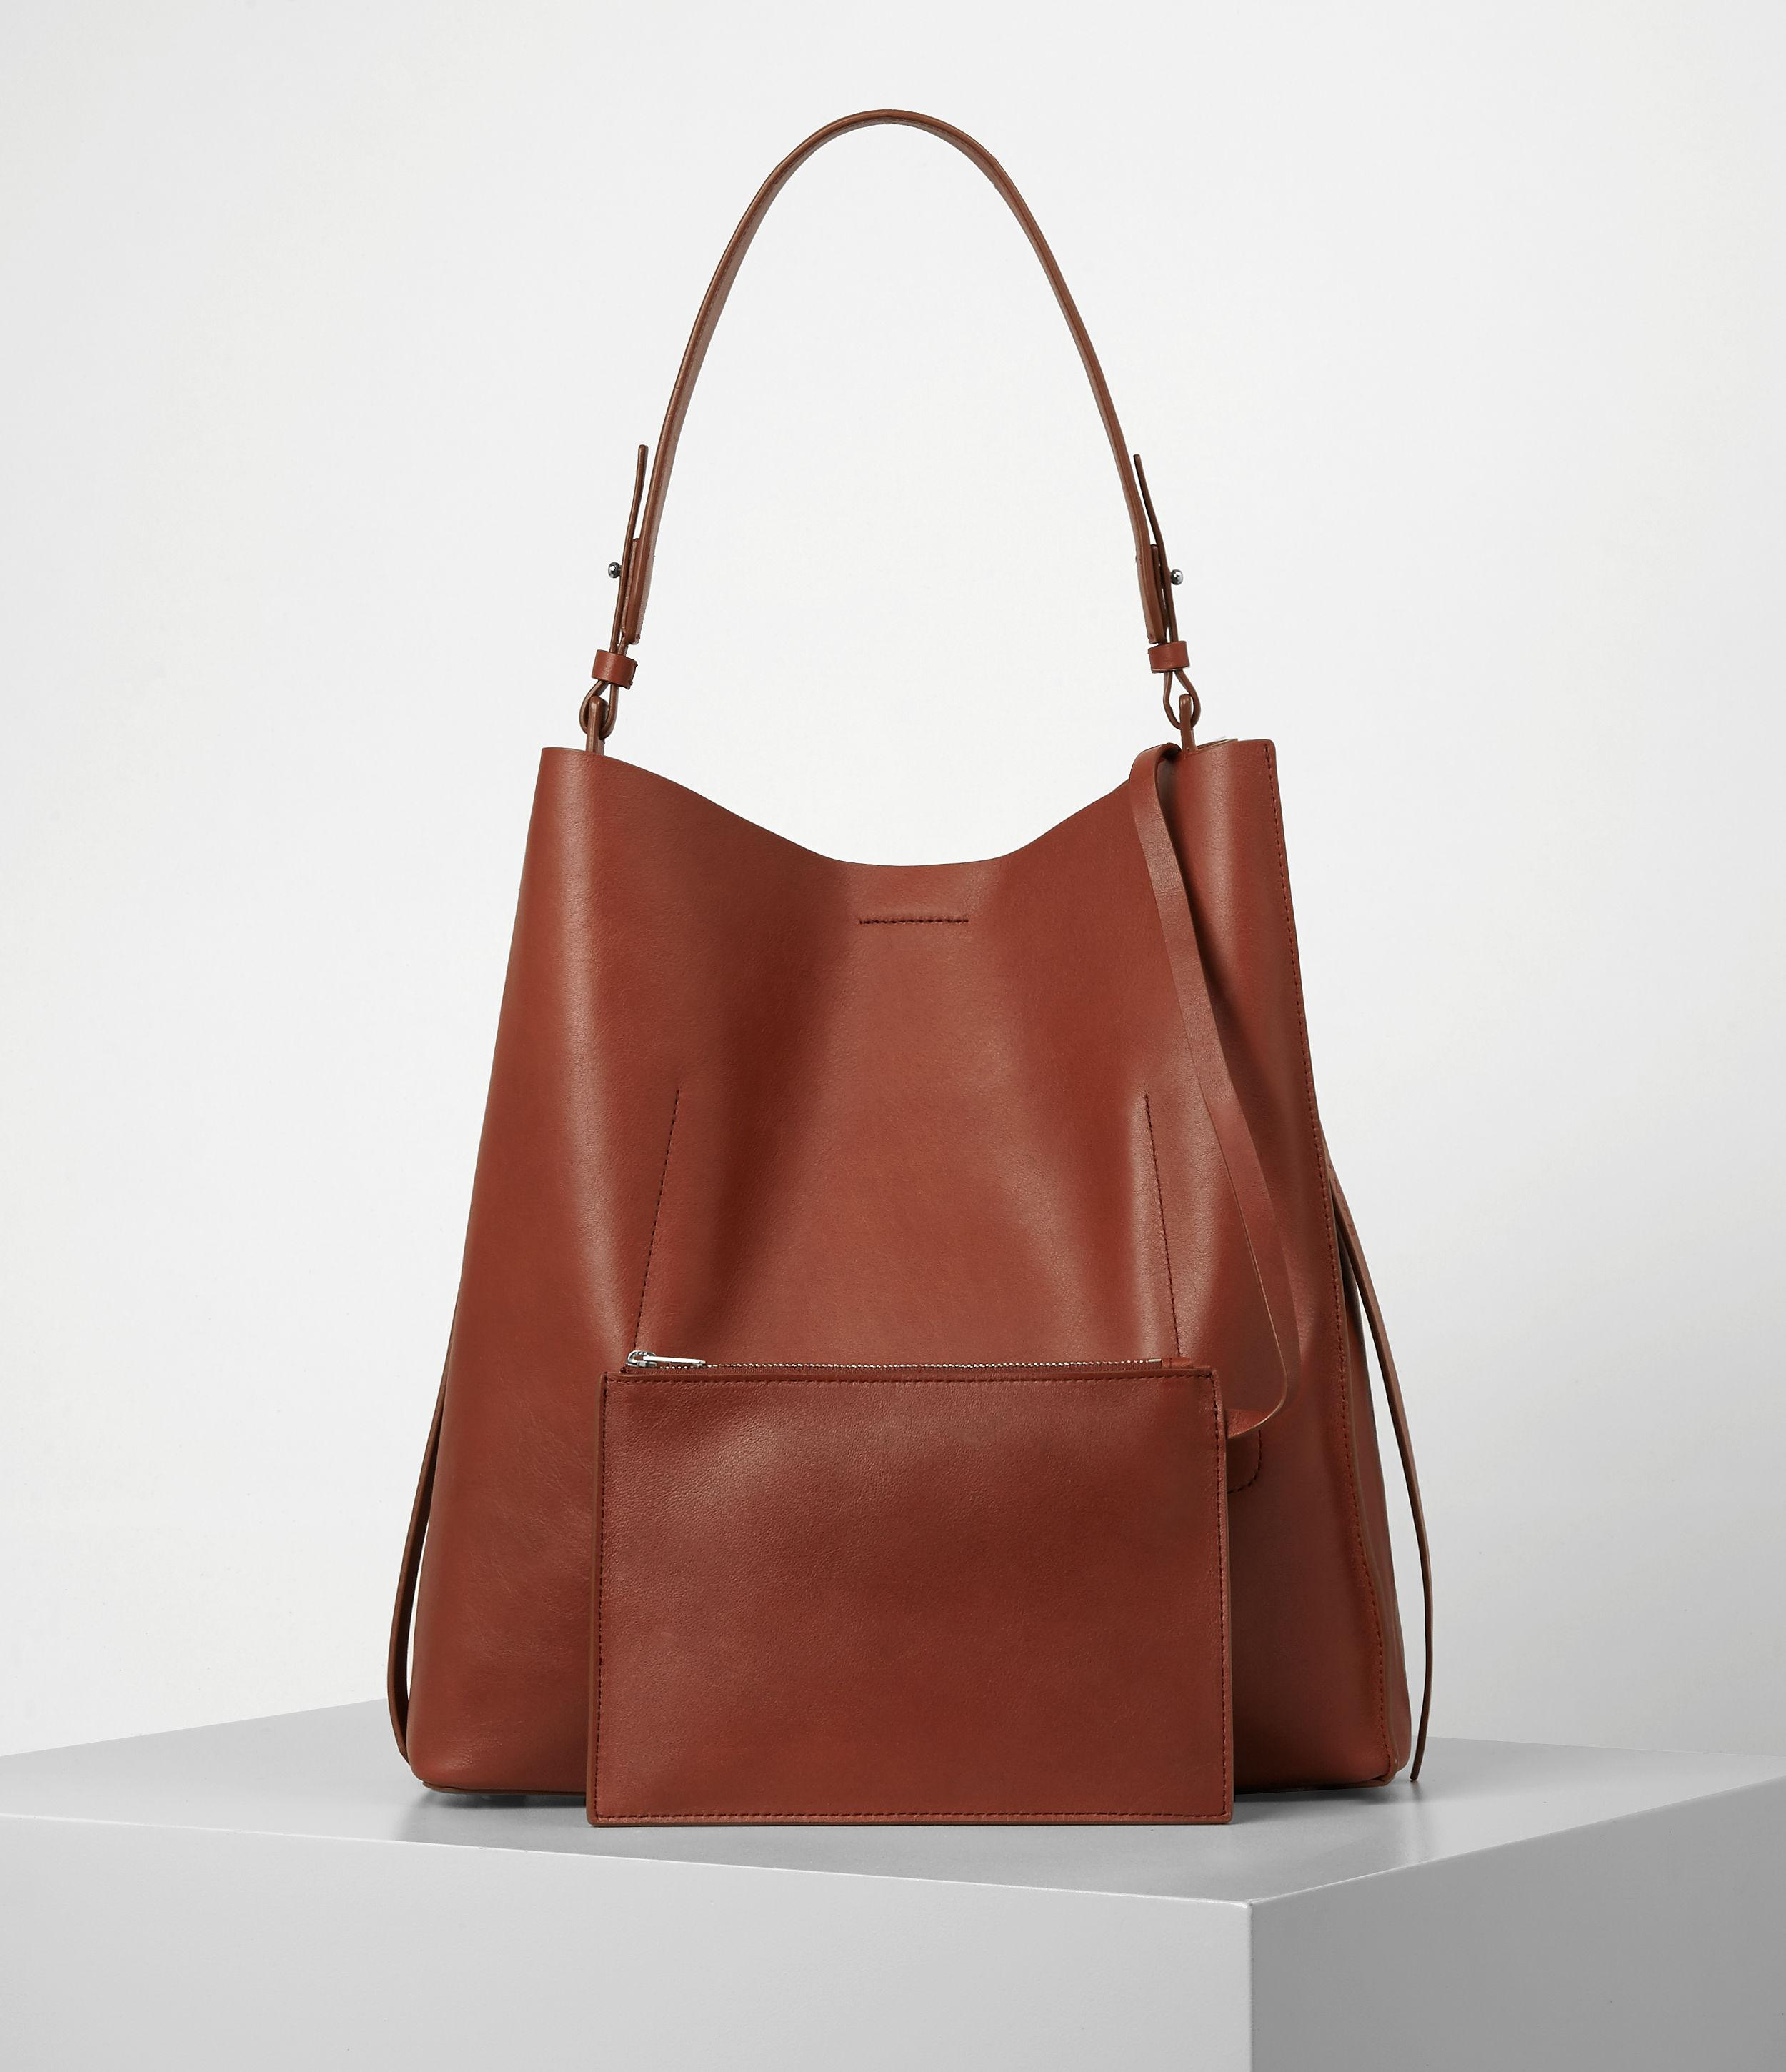 AllSaints Leather Paradise North South Tote in Brick Brown (Brown)